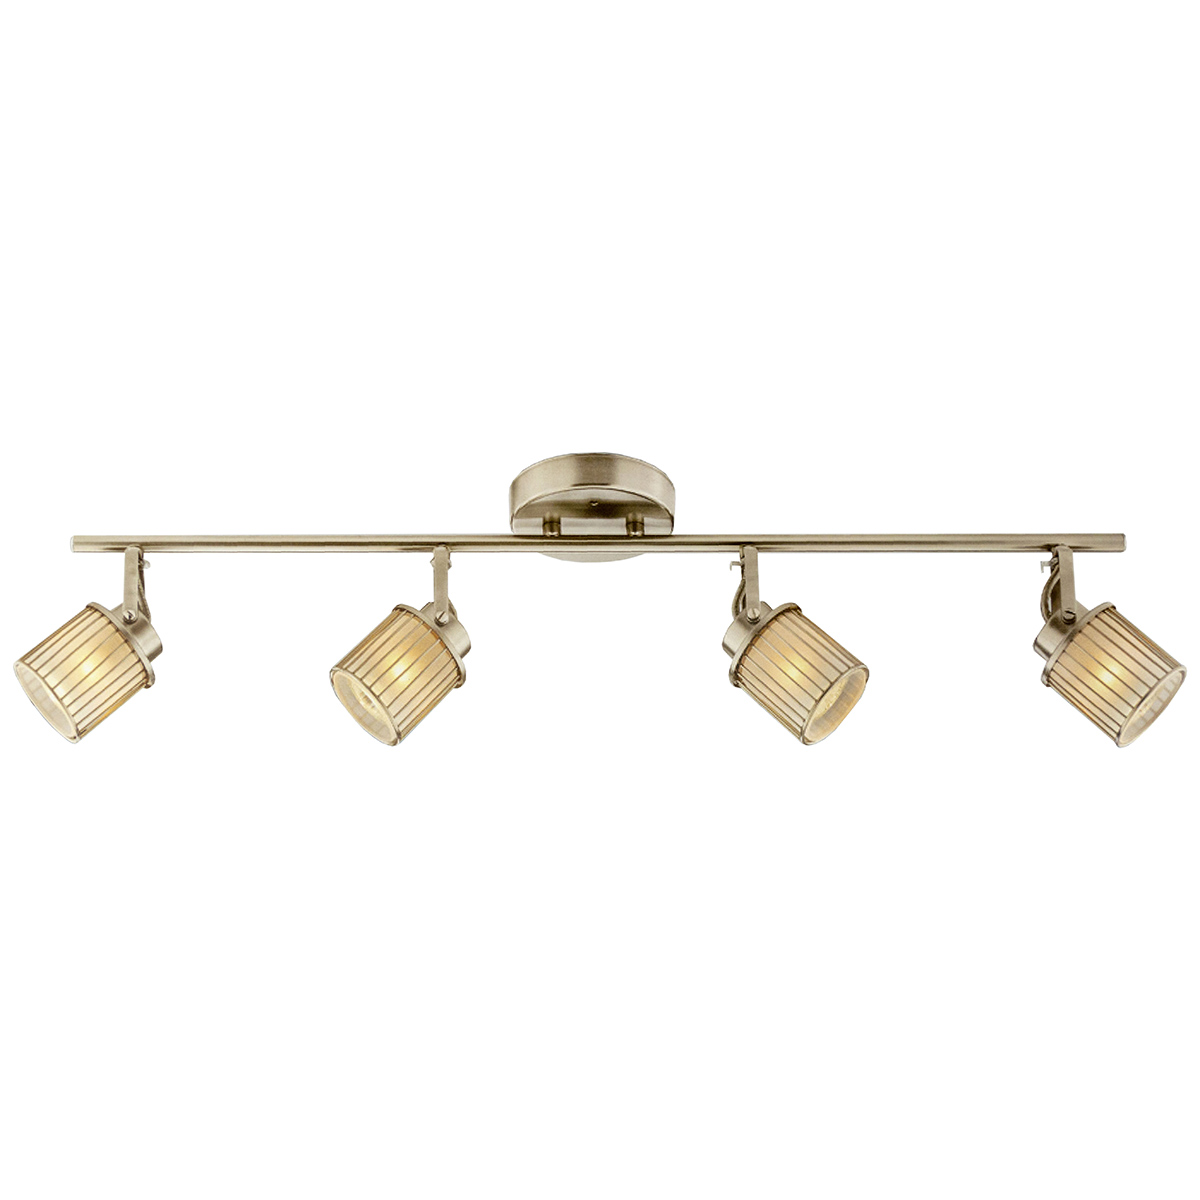 Catalina 4-Light Track Bar, Frosted Glass Shades, Brushed Nickel